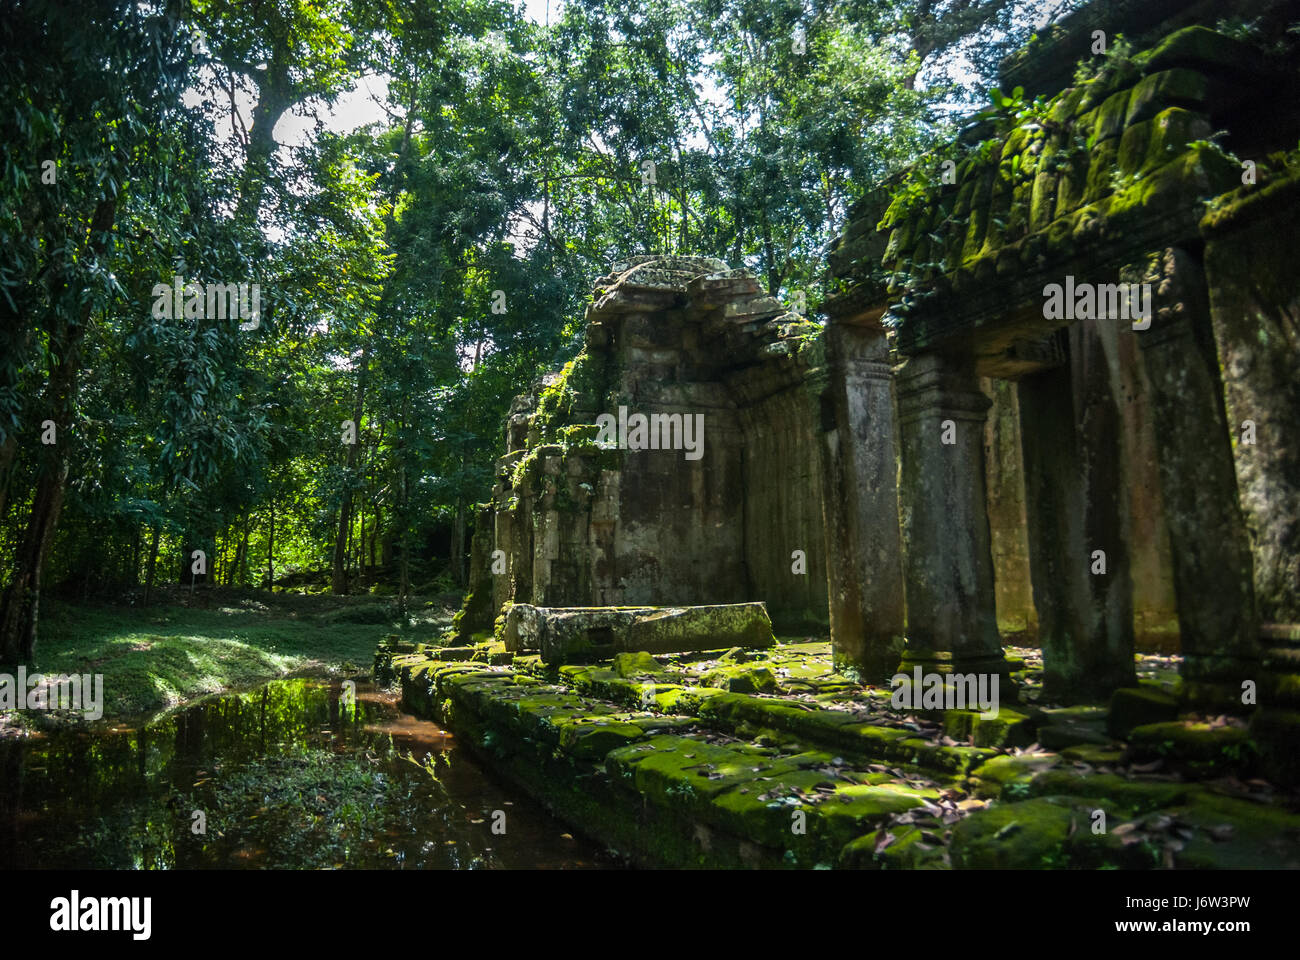 Ancient architecture of Ta Prohm temple with canal in Angkor complex, Siem Reap, Cambodia. - Stock Image